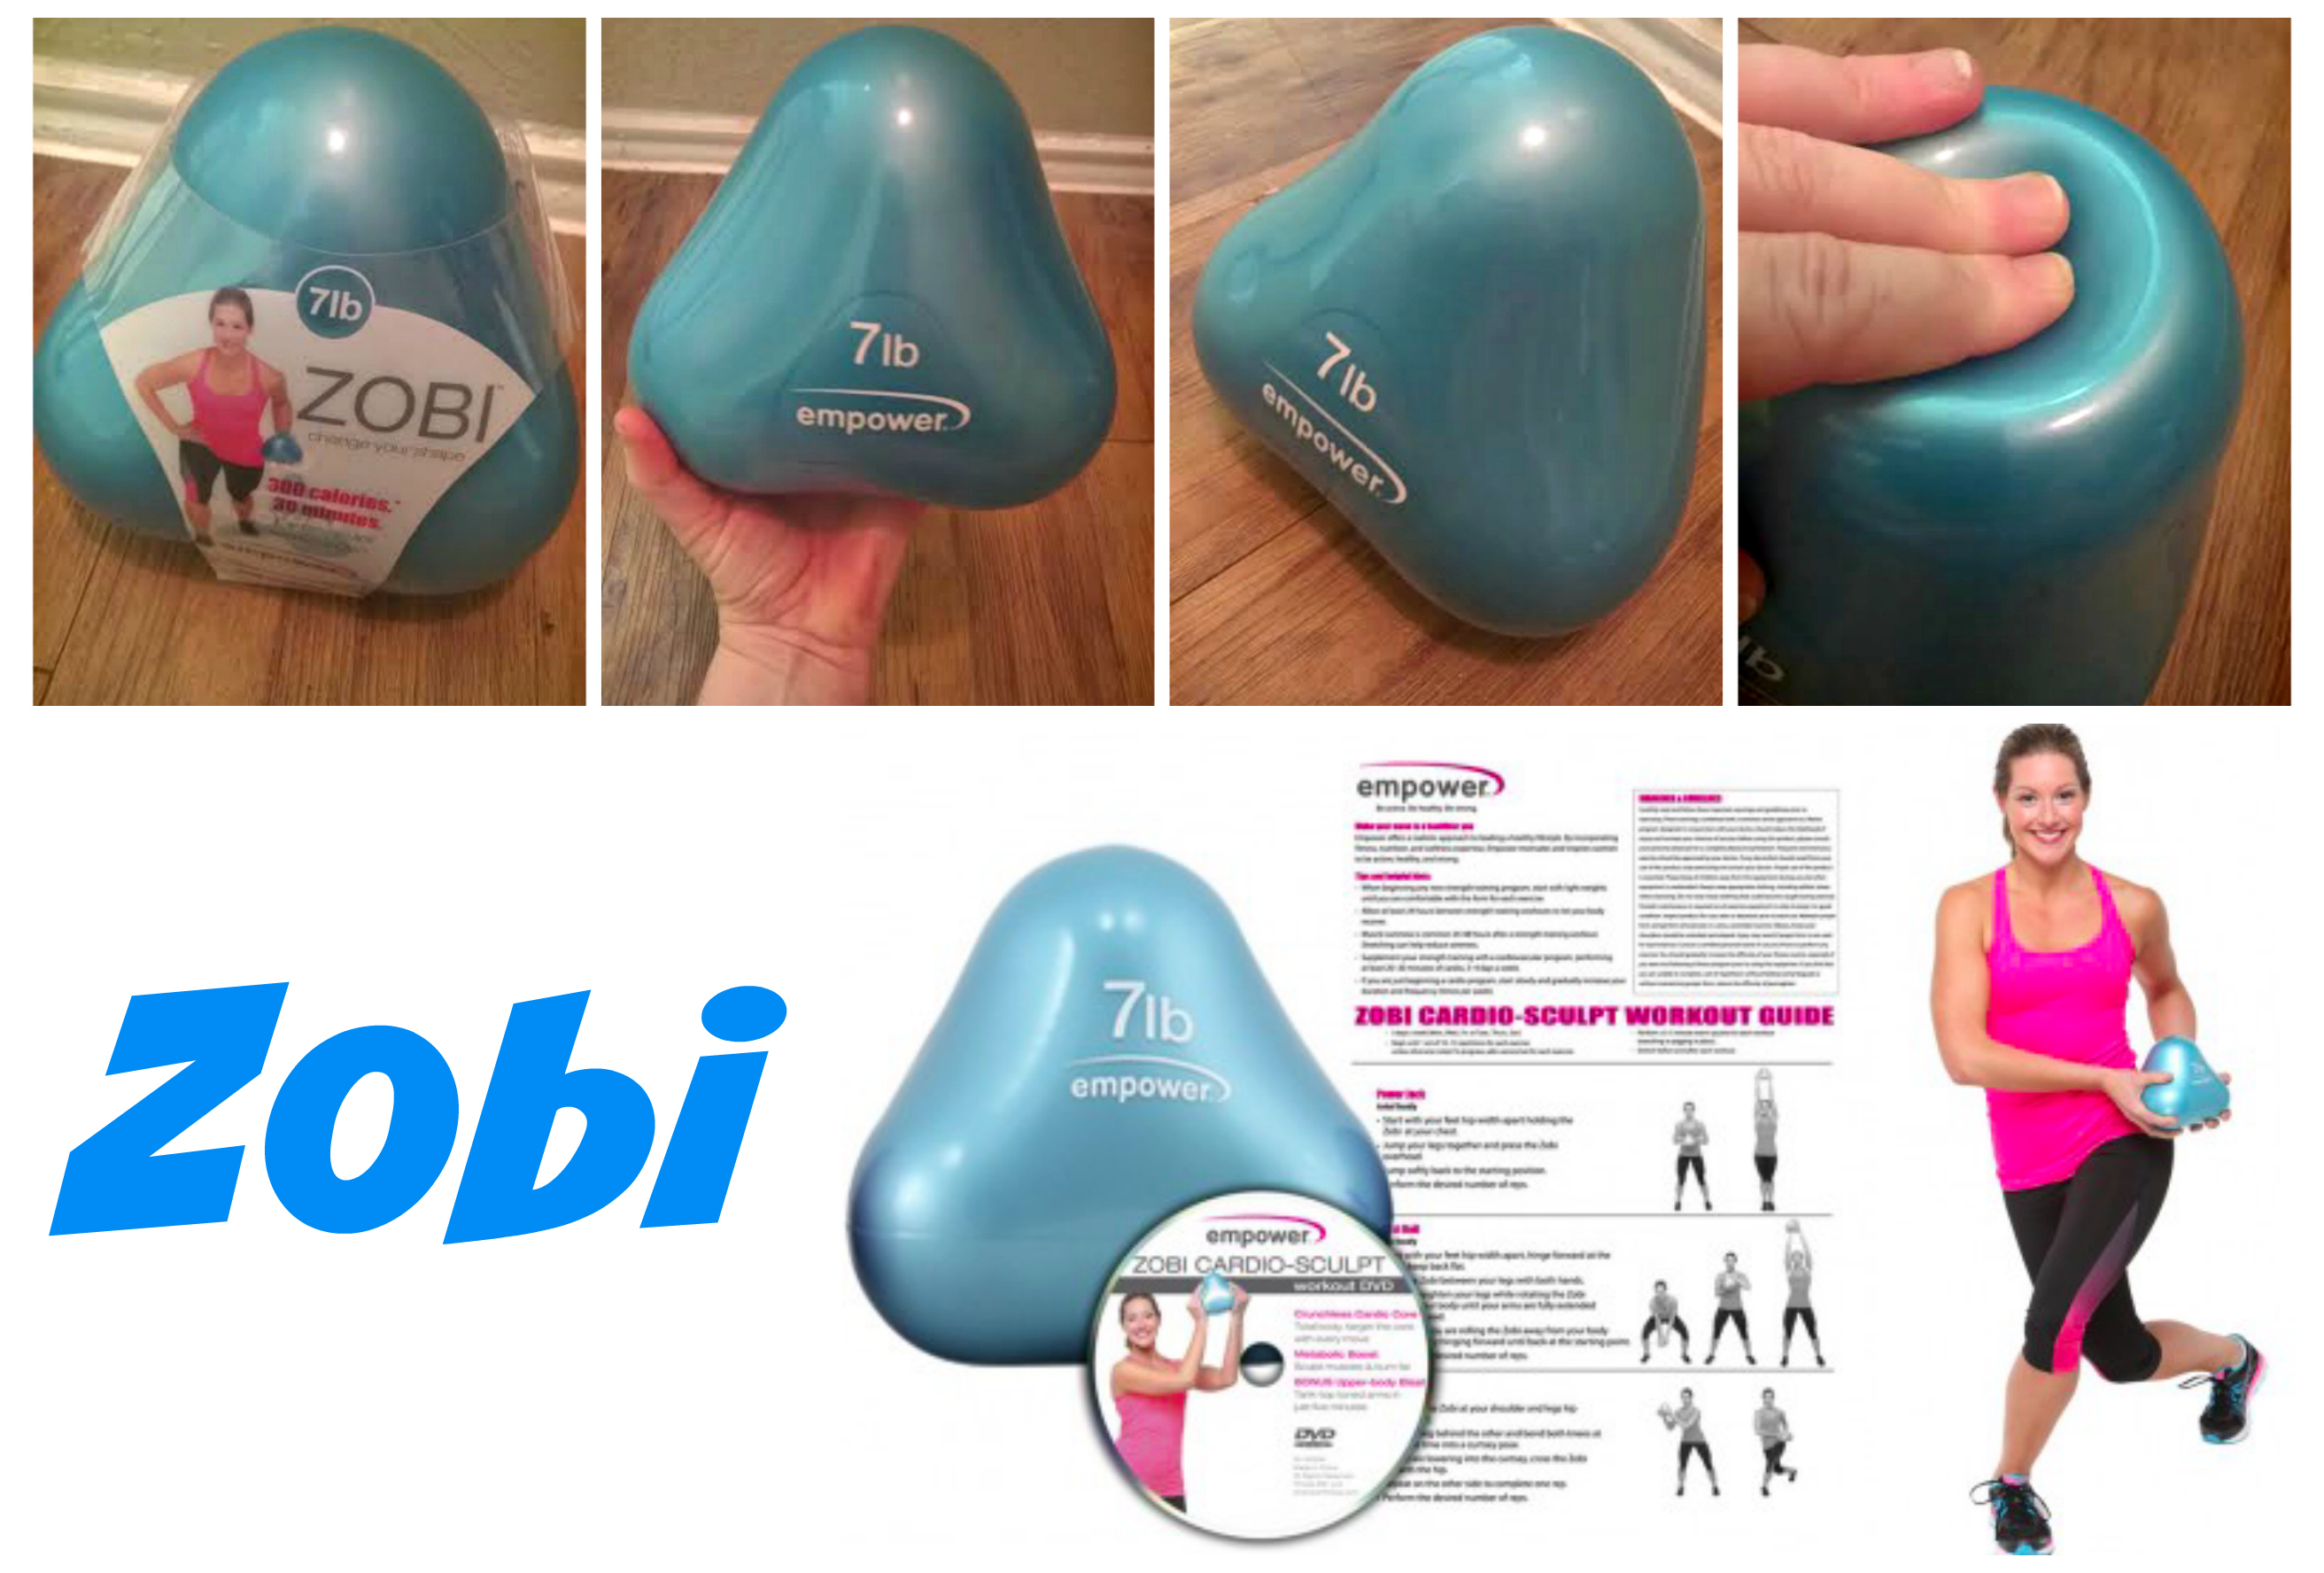 Zobi 7 lb workout ball from Empower Fitness